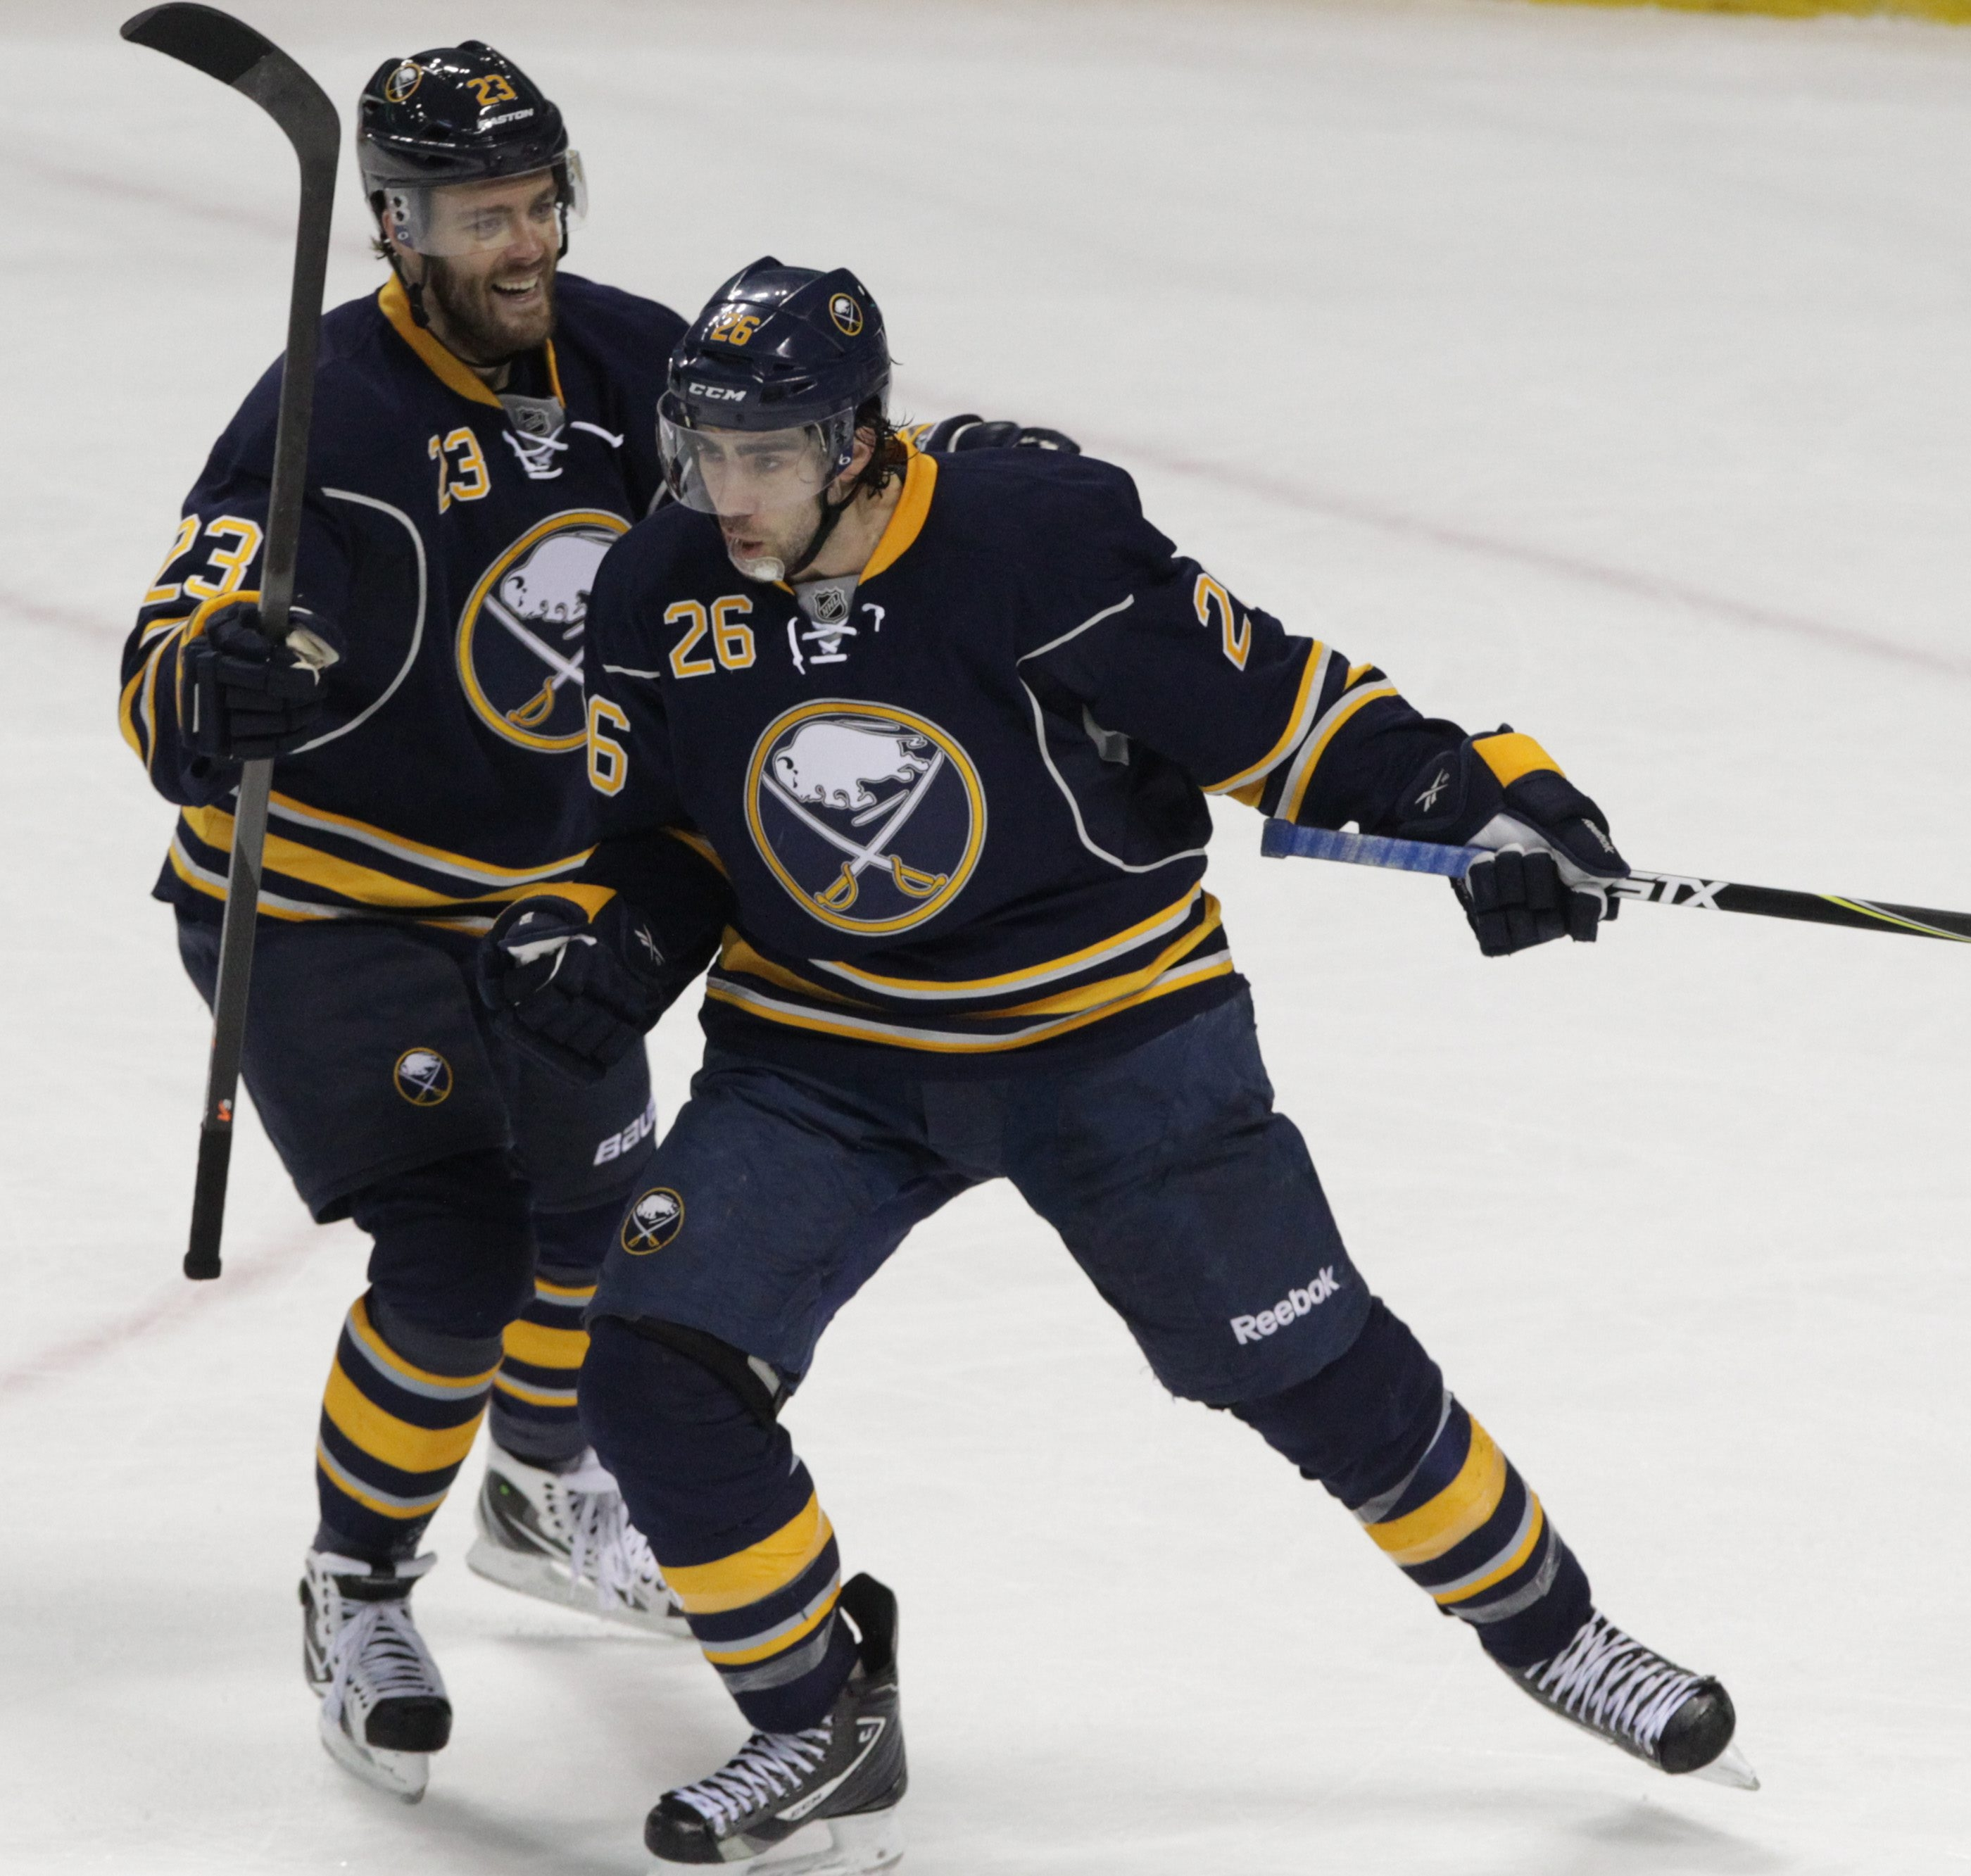 Buffalo Sabres left wing Matt Moulson (26) celebrates after scoring a goal against Boston Bruins goalie Chad Johnson (30) at First Niagara Center in Buffalo on Feb. 26.